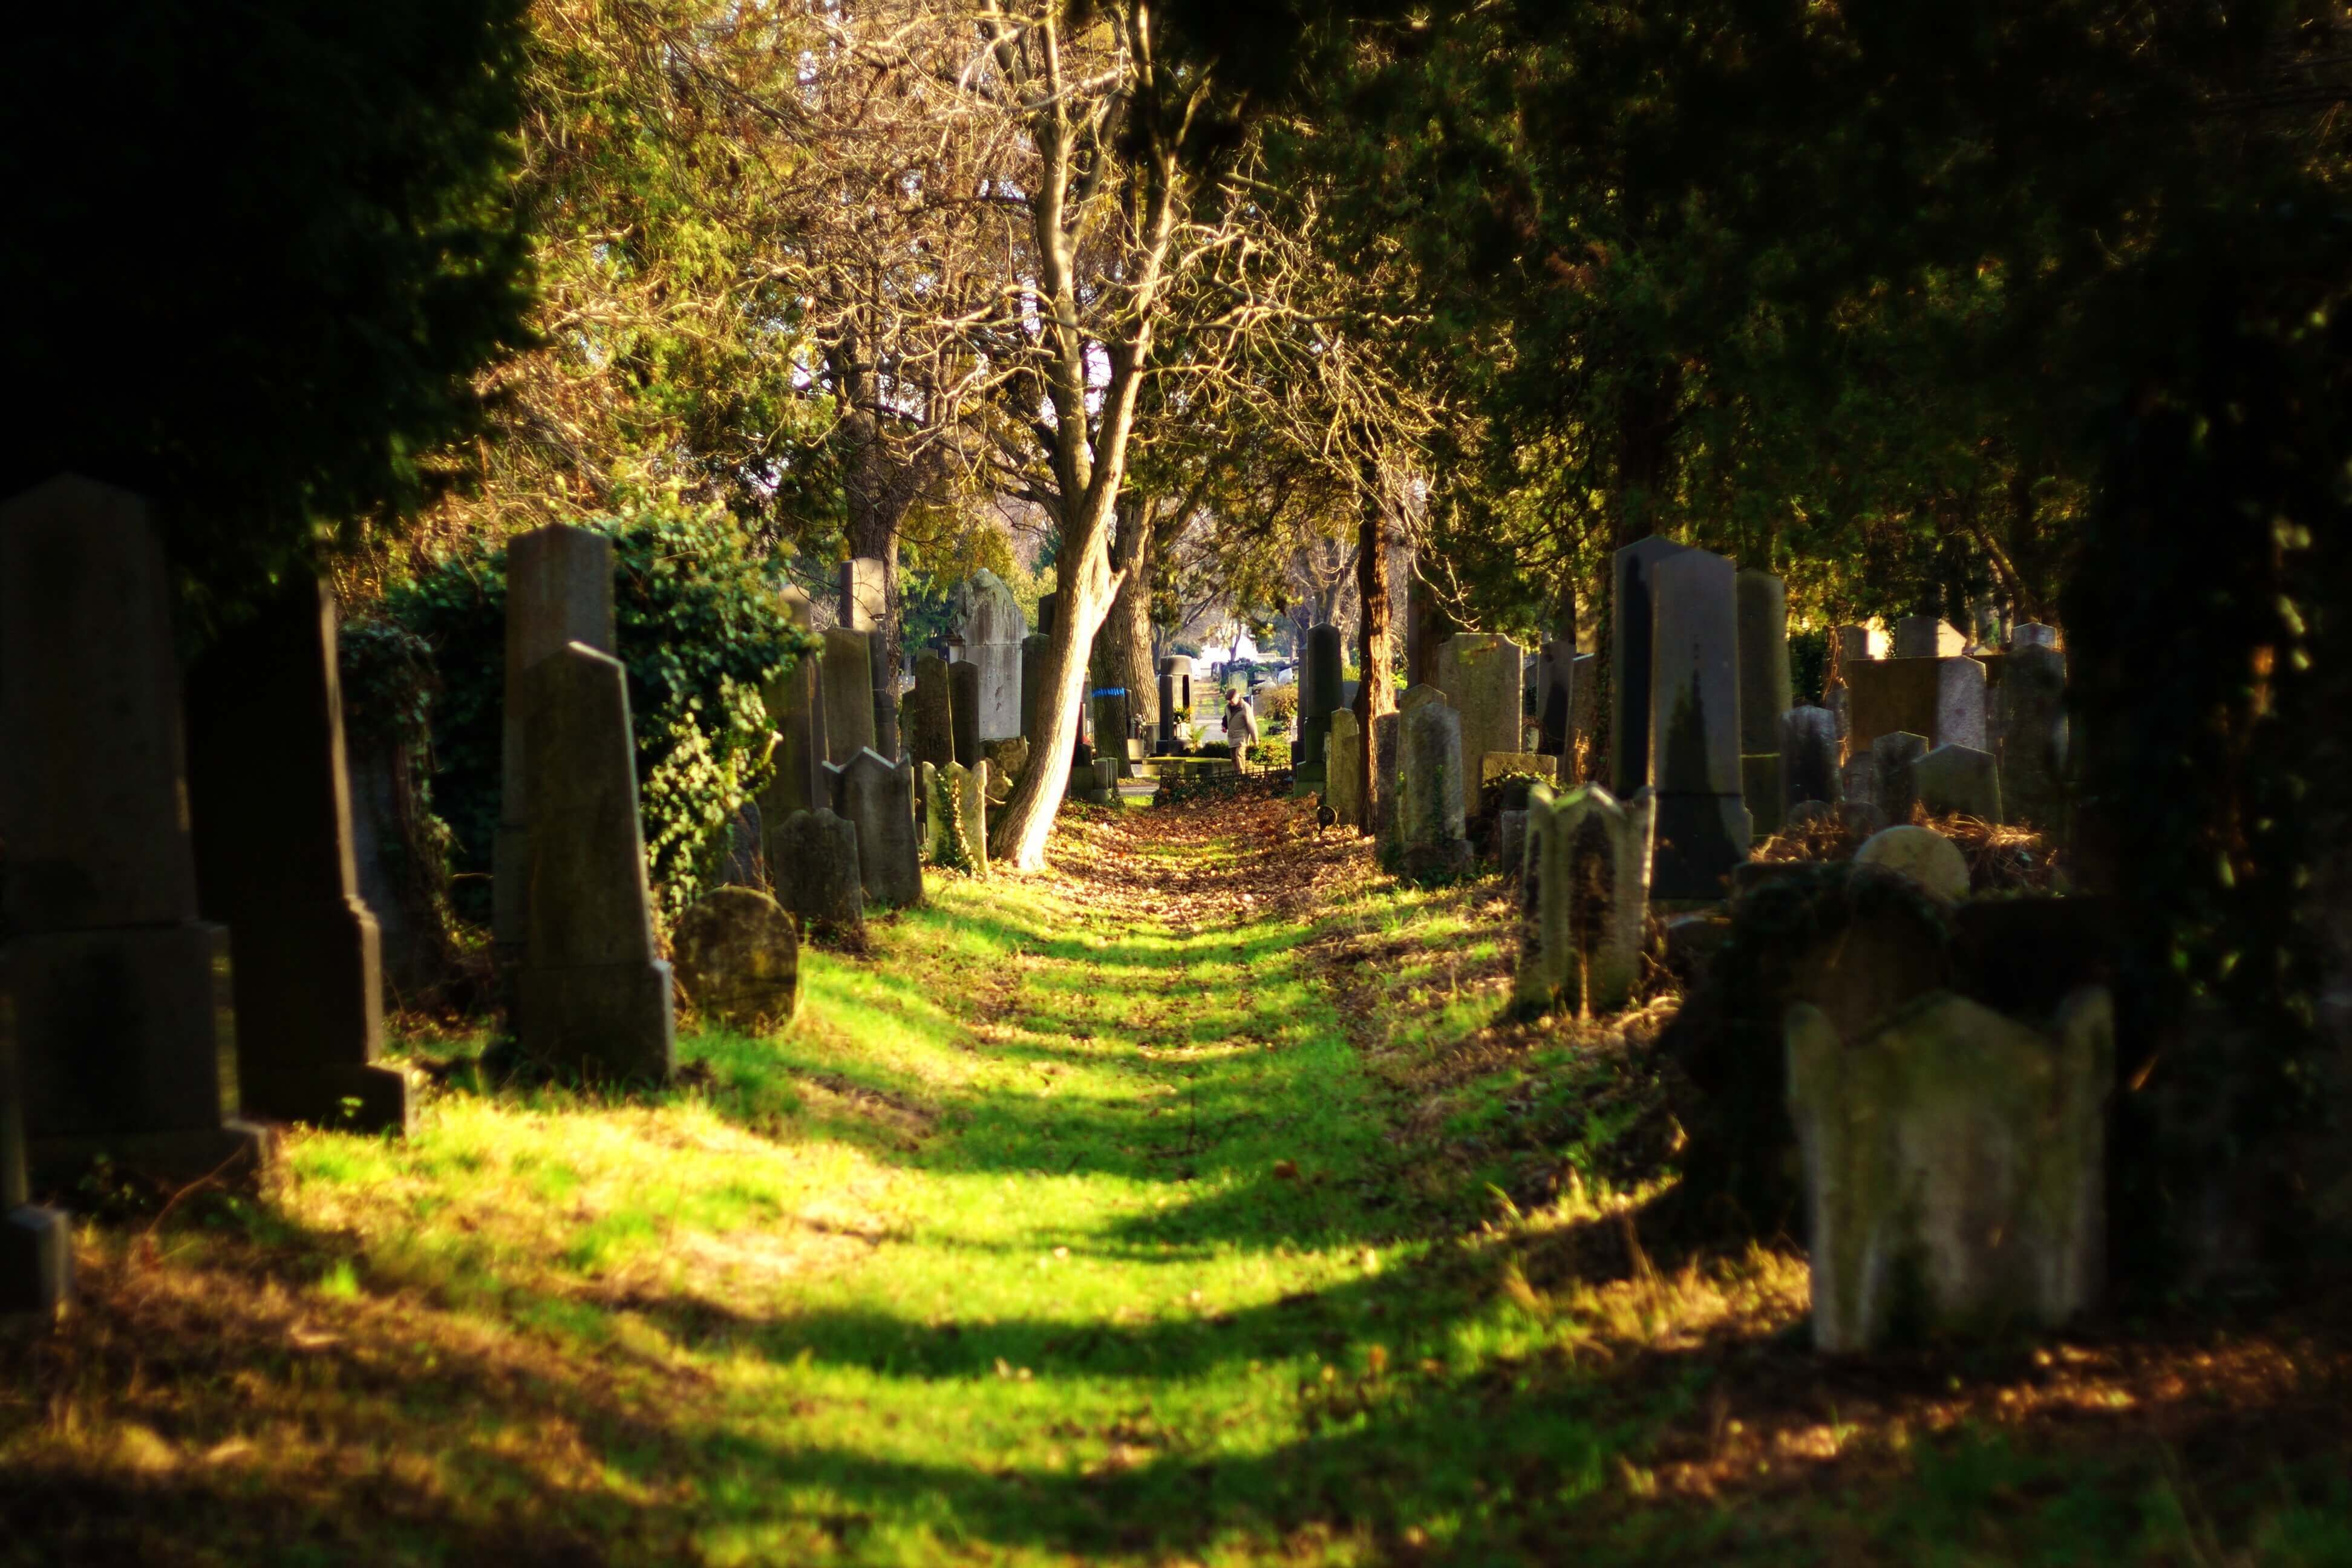 grassy pathway in a cemetery